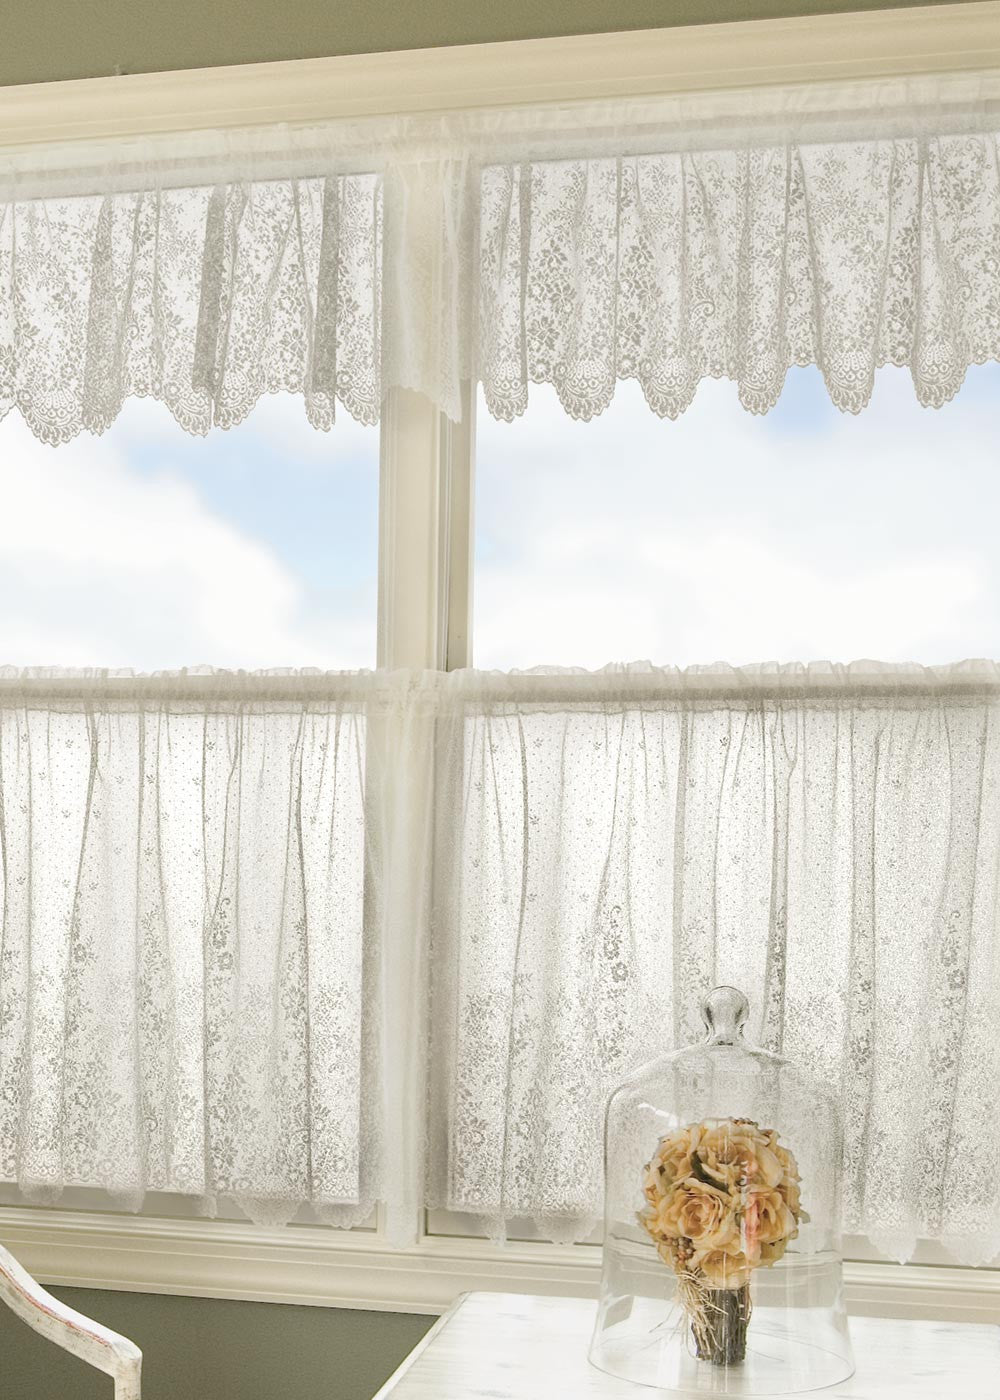 cheap black get tier beatrice shopping window deals valance find guides quotations lace line at floral on set